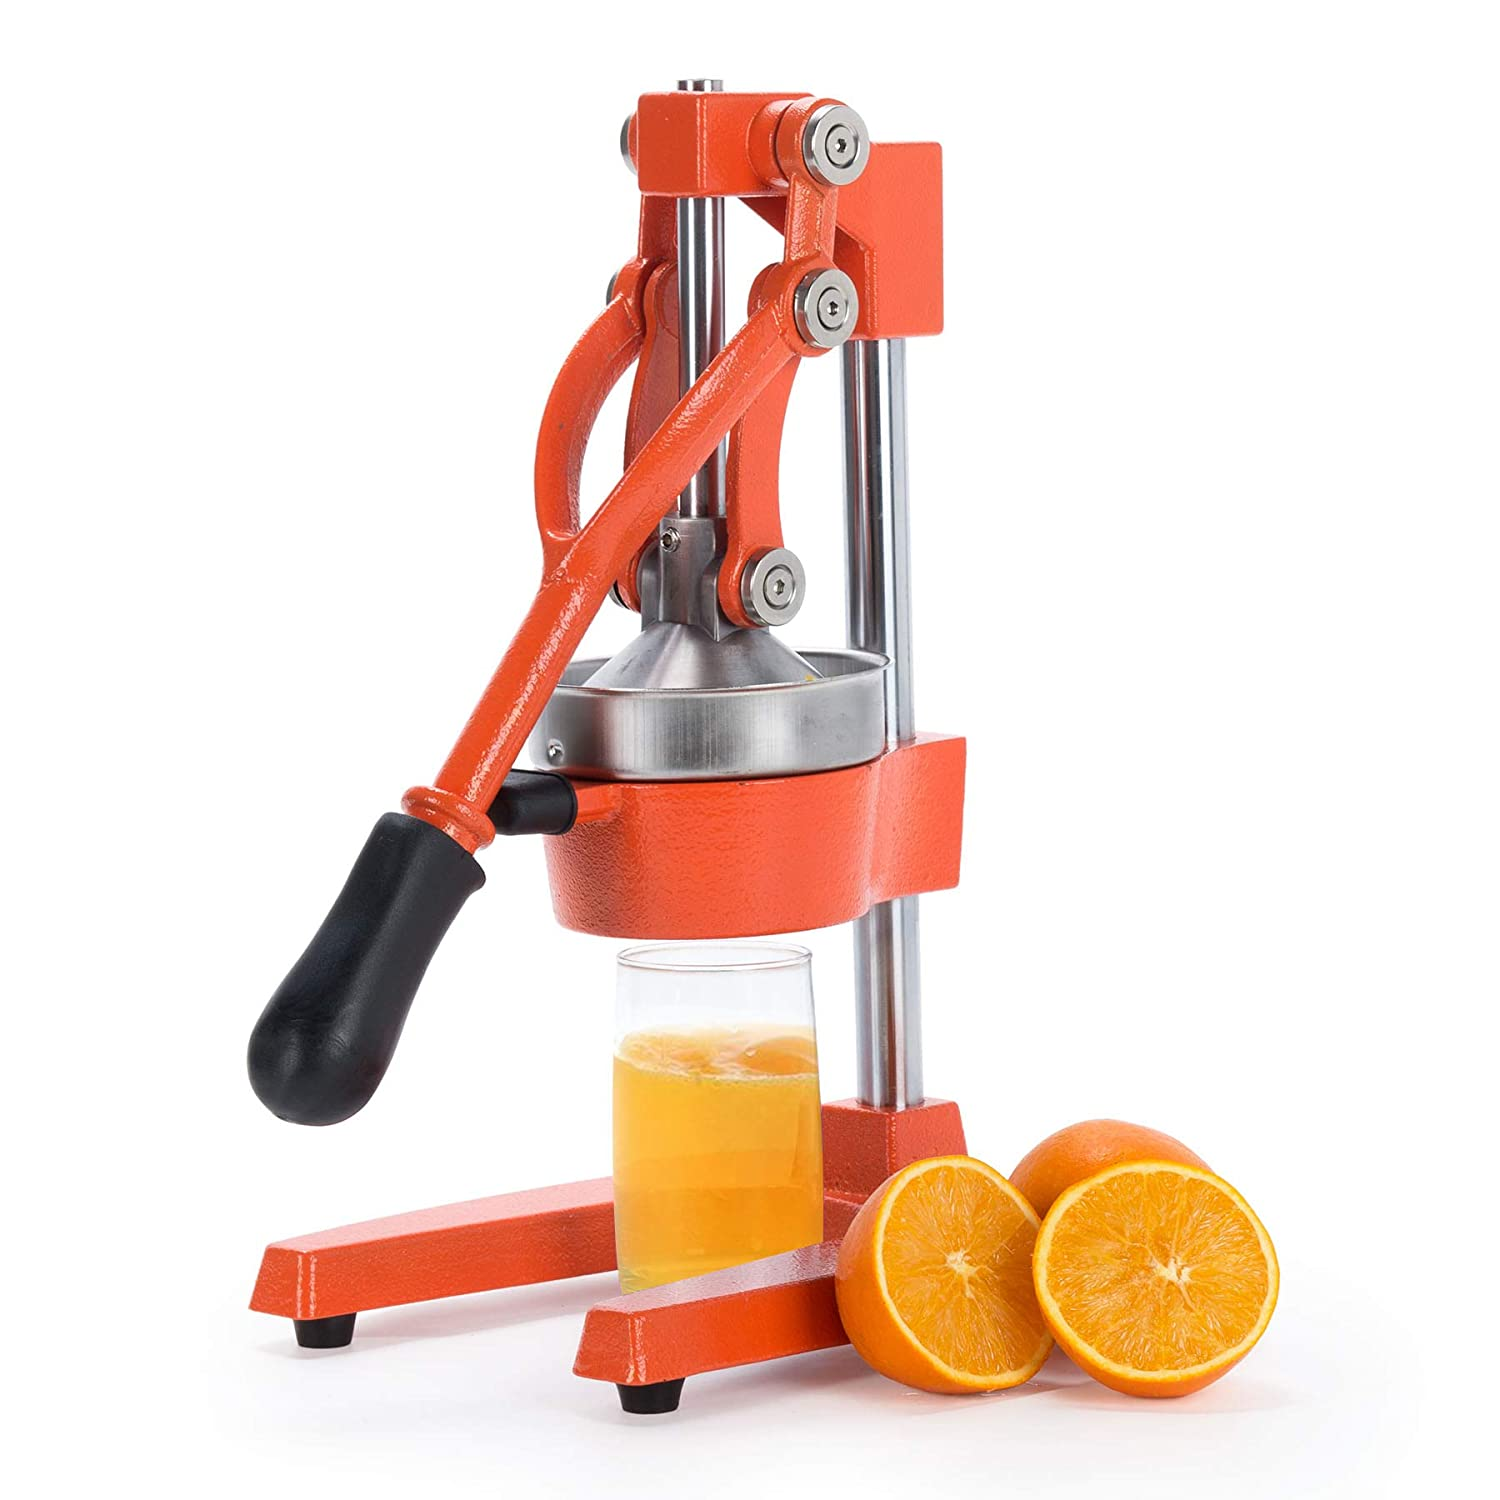 CO-Z Commercial Grade Citrus Juicer Hand Press Manual Fruit Juicer Juice Squeezer Citrus Orange Lemon Pomegranate (Orange)